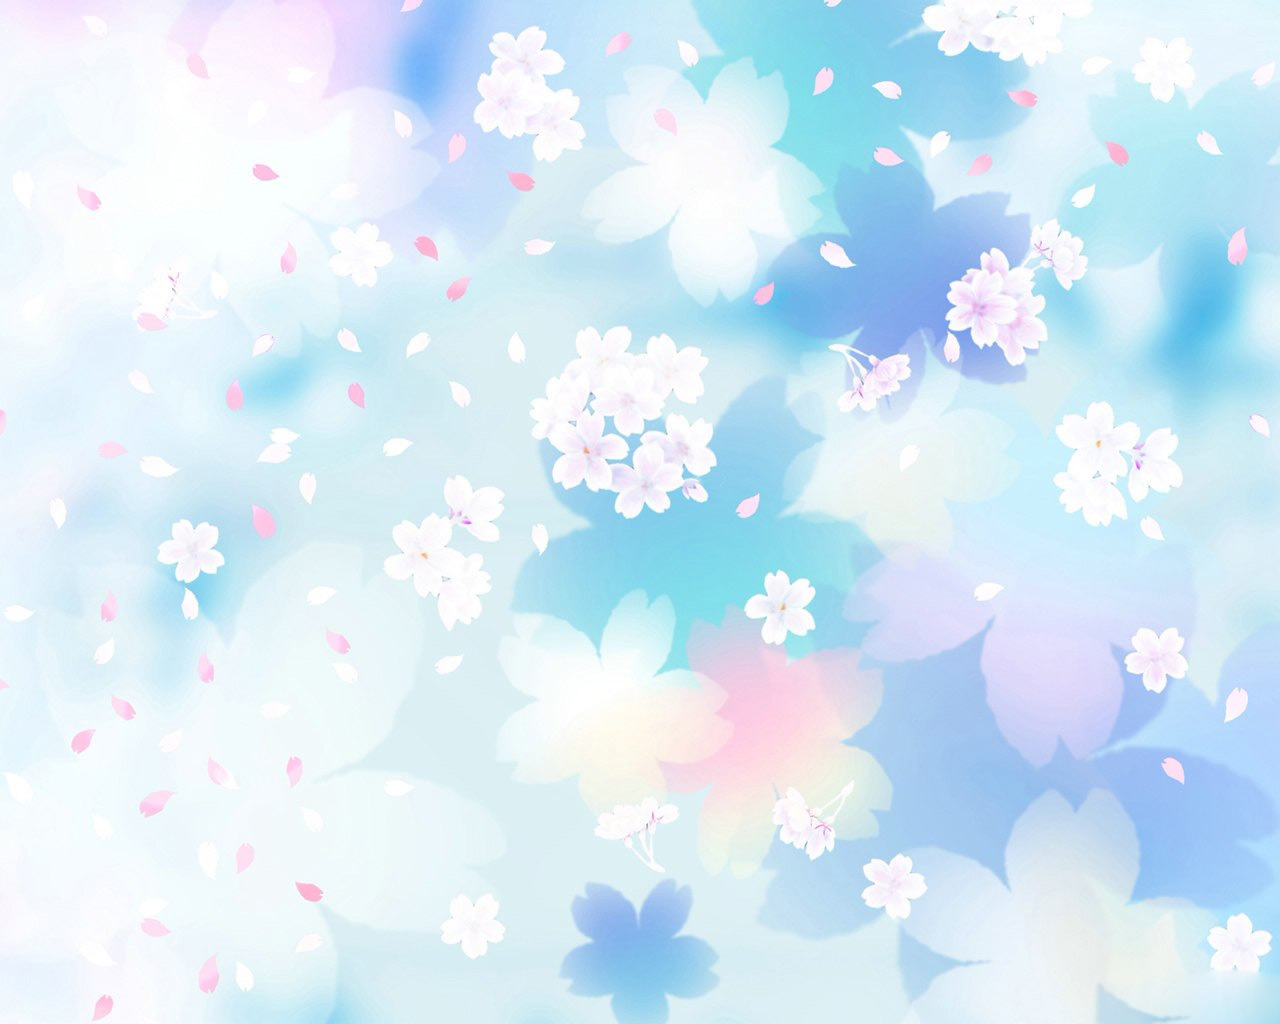 Blue And White Flowers Backgrounds Wallpaper Full HD Wallpapers 1280x1024